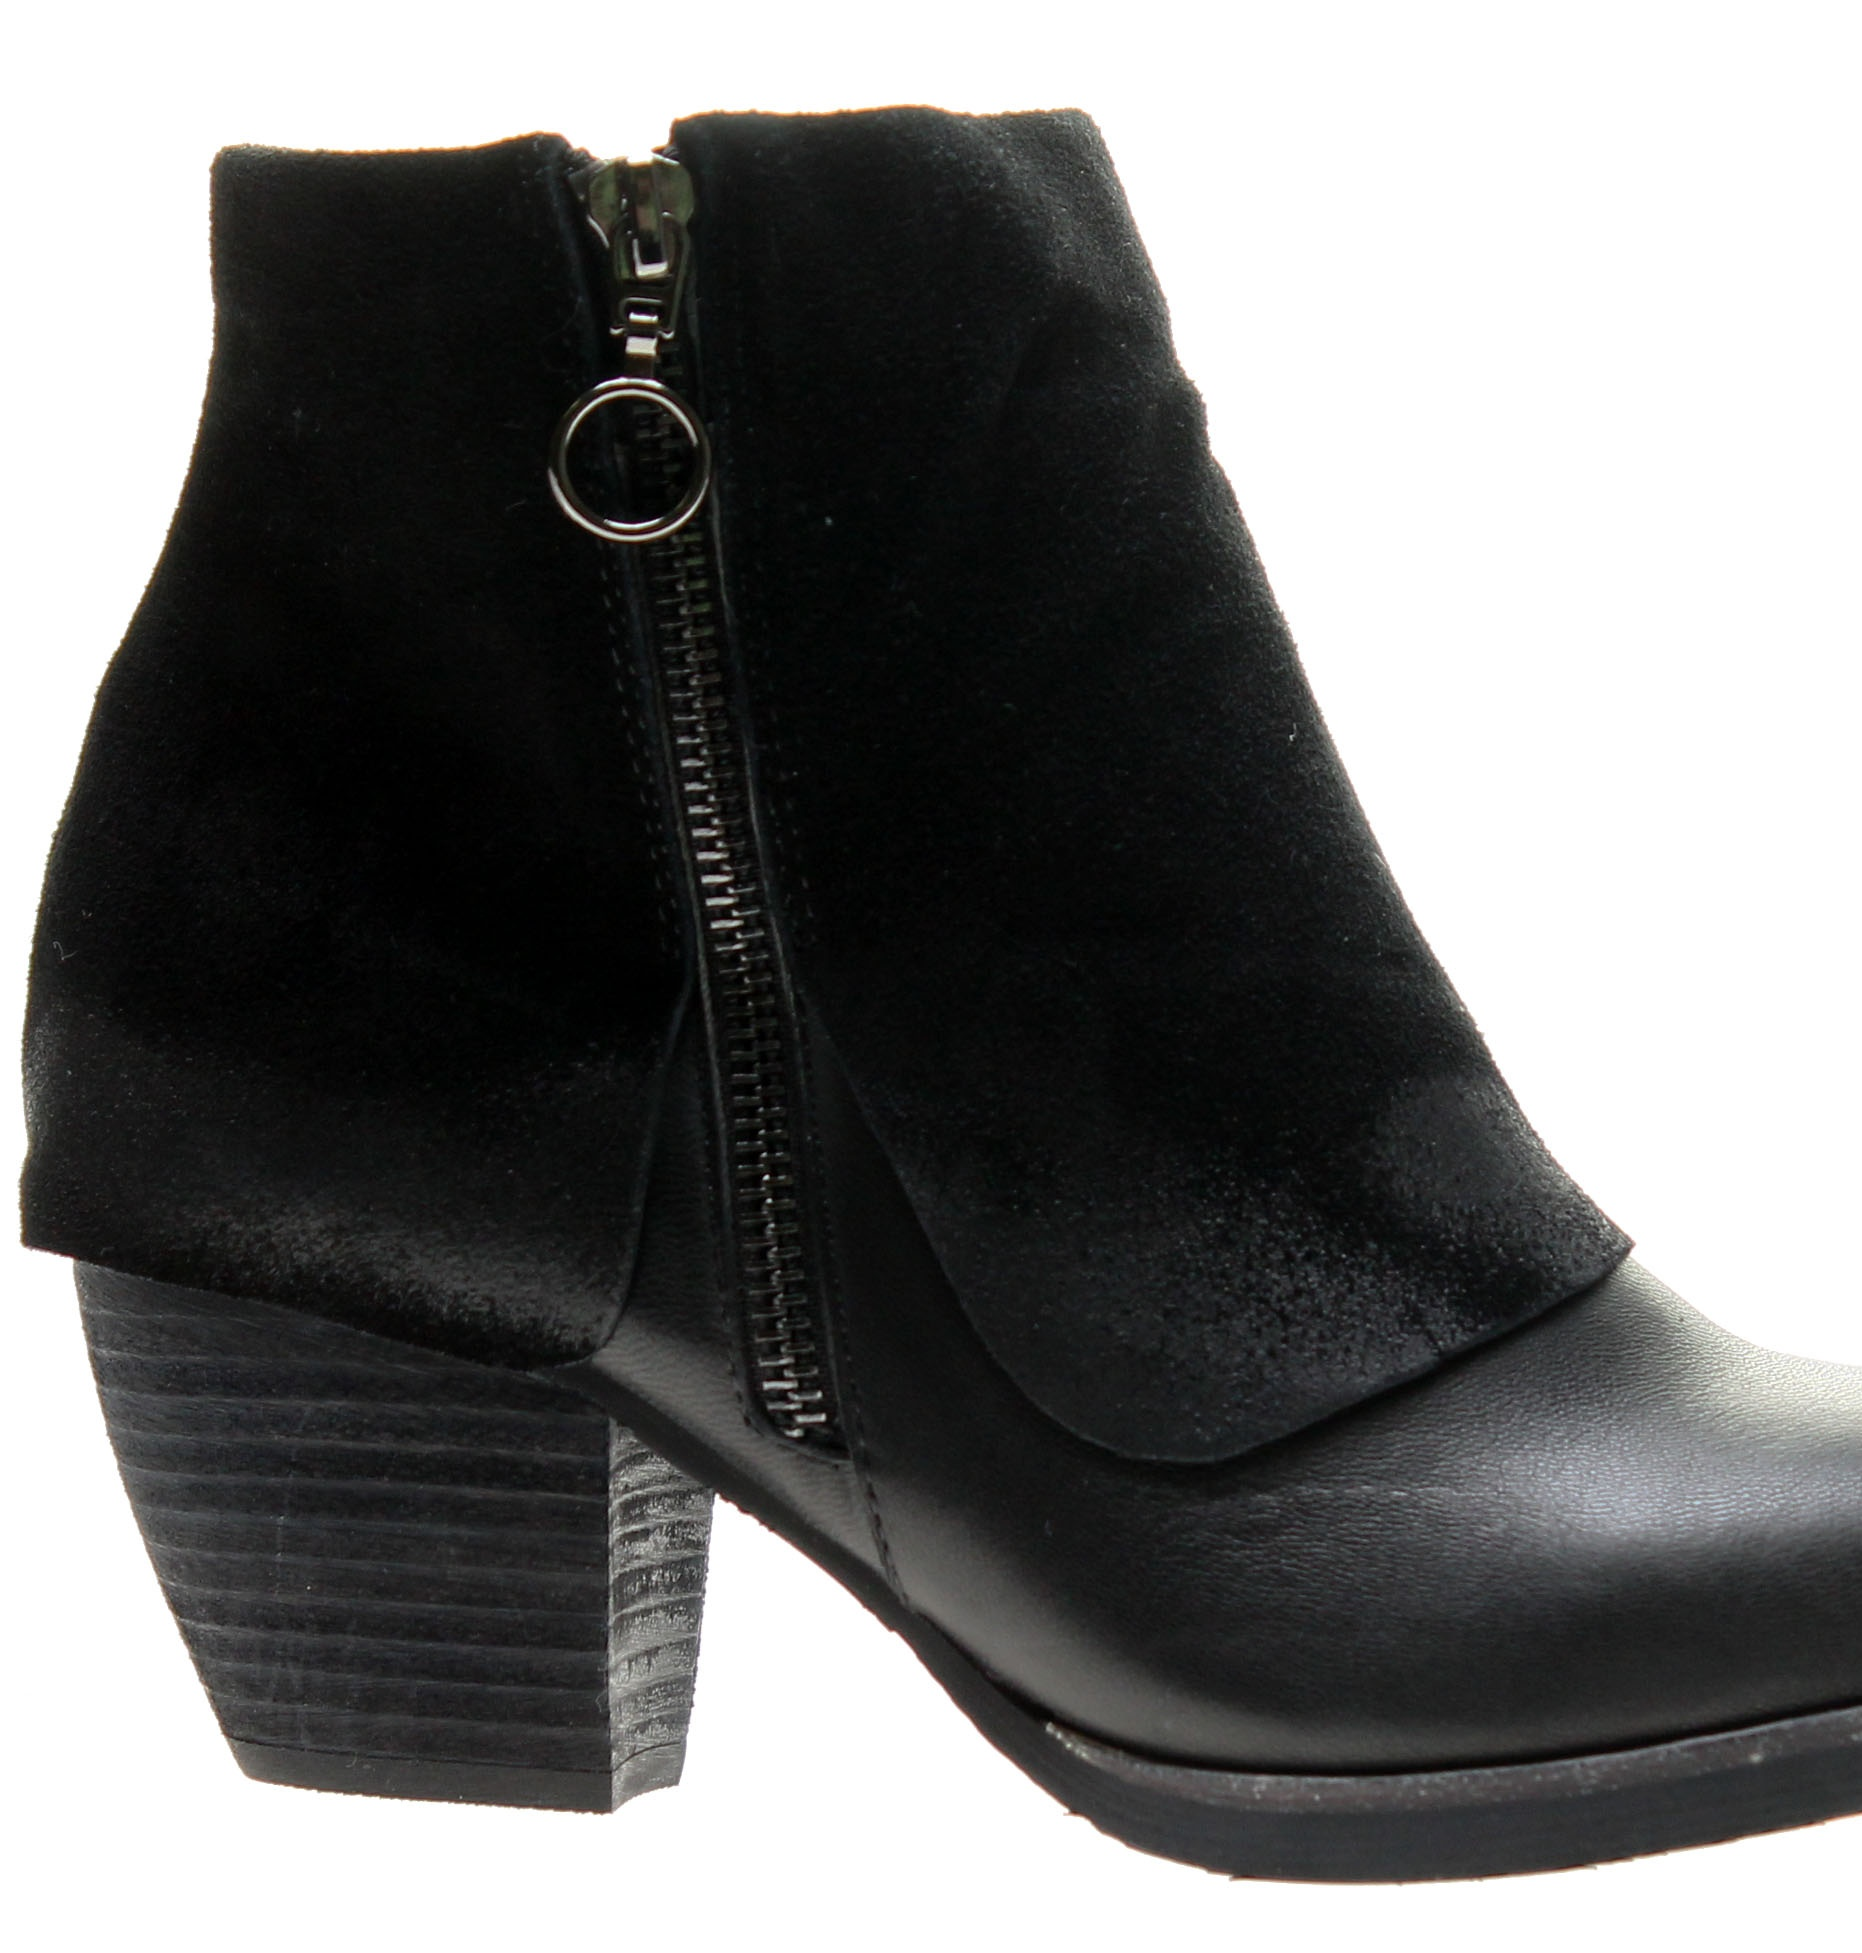 Antelope 654 Ankle Booties Black Women's Boots 654-Black